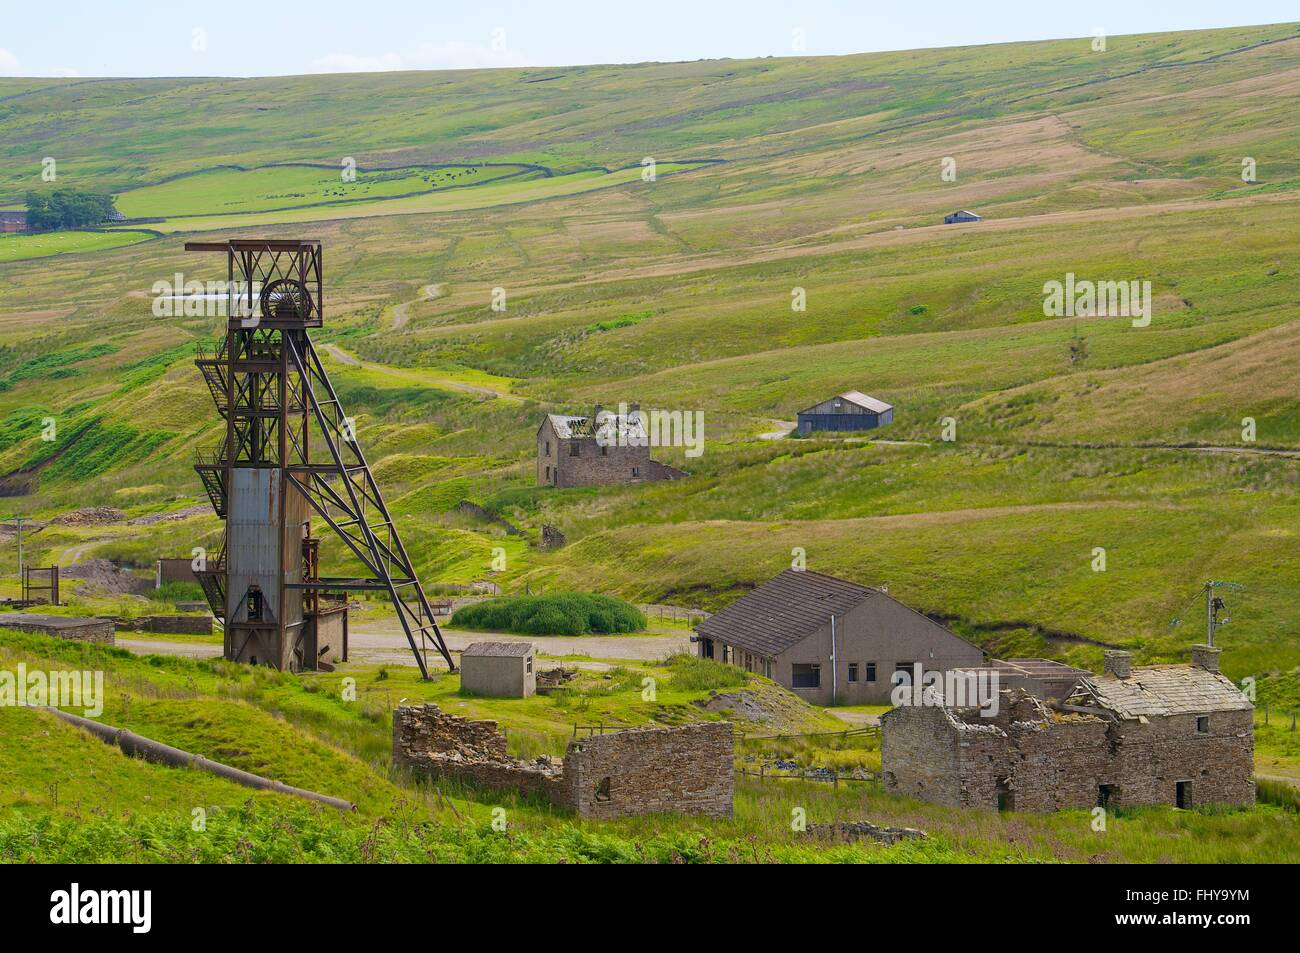 Disused Pithead of Grove Rake Mine buildings, Rookhope District, Weardale, North Pennines, County Durham, England, - Stock Image